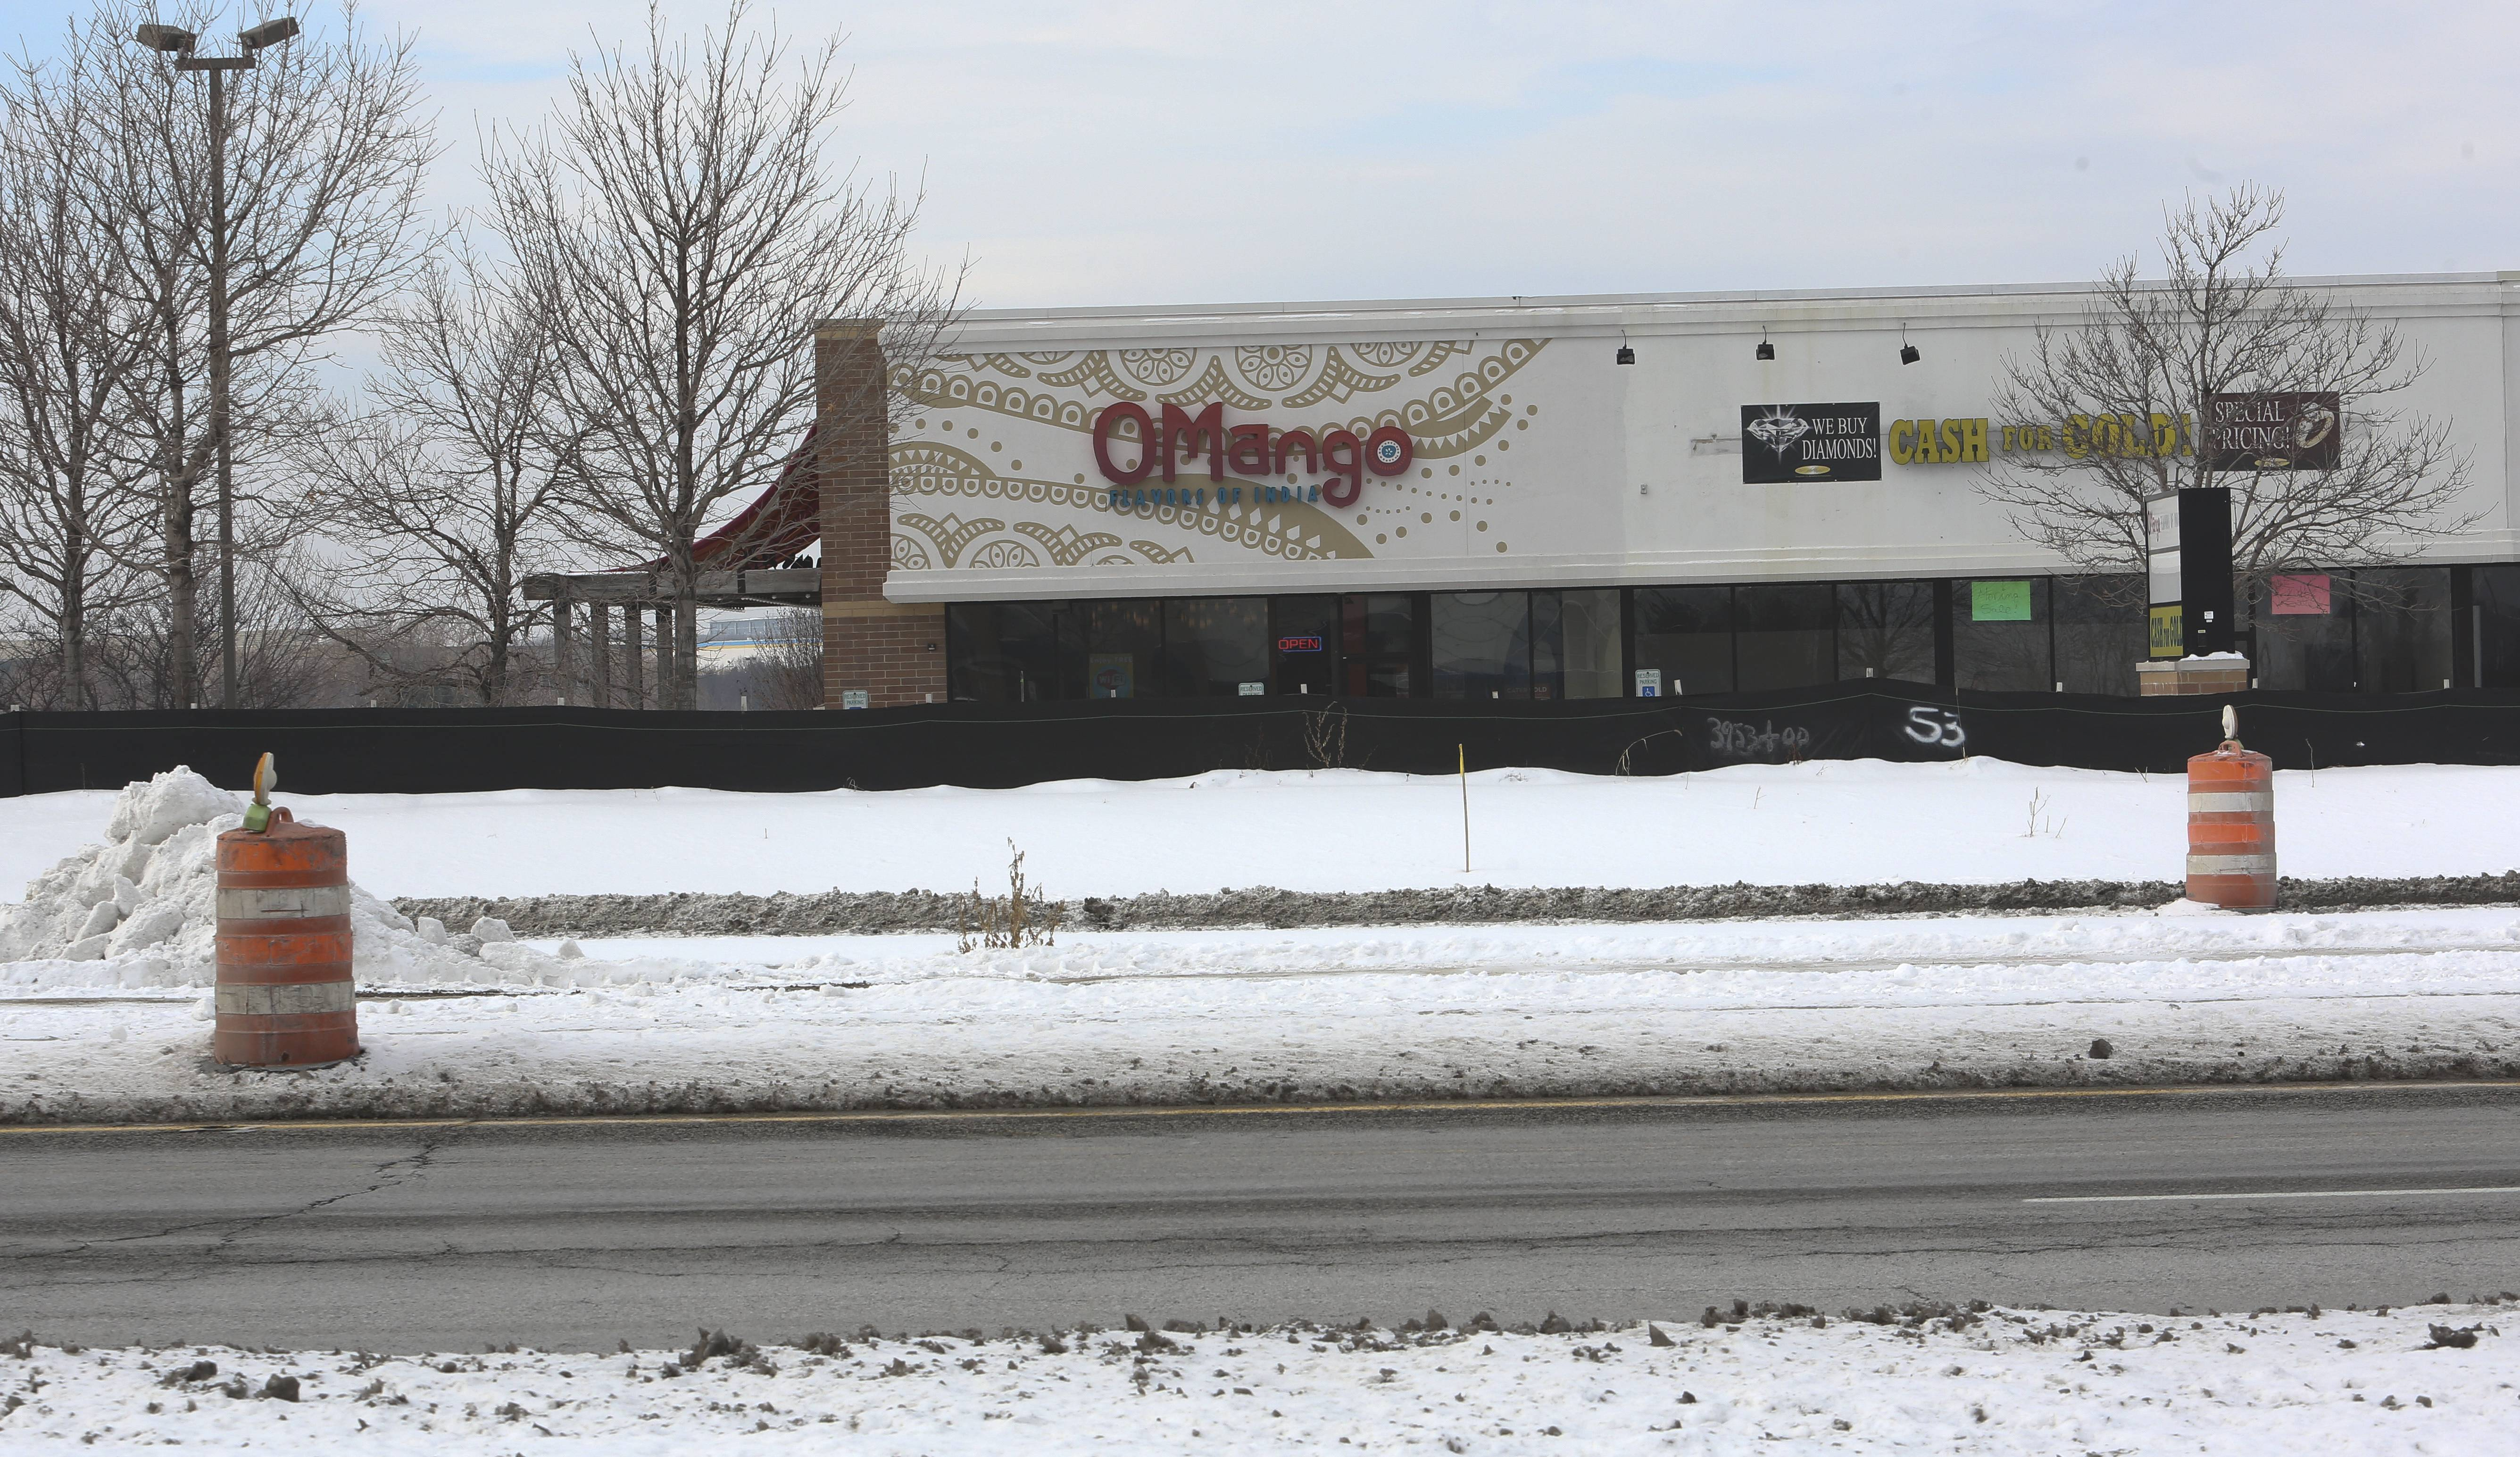 OMango Flavors of India at 1056 Route 59, Suite 100, is located inside the three-mile Route 59 construction zone on the Naperville/Aurora border between Ferry Road and Aurora Avenue/New York Street.